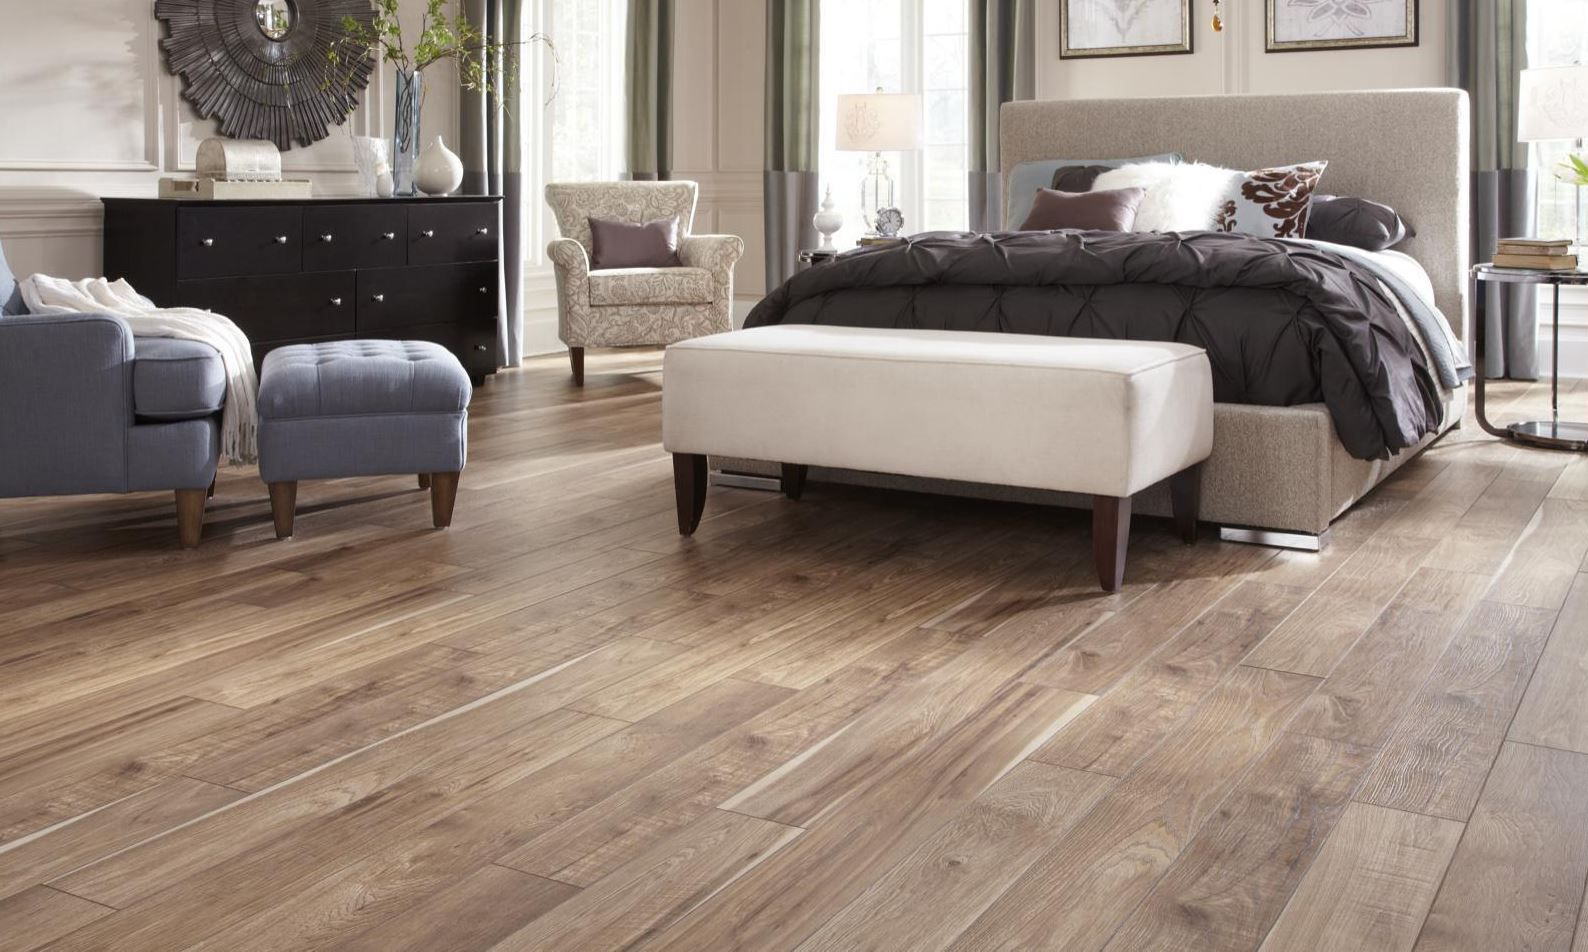 ceramic lowes lowe like vinyl flooring floor aestethyc of bathroom grey hardwood s options full cheap wood size looks that